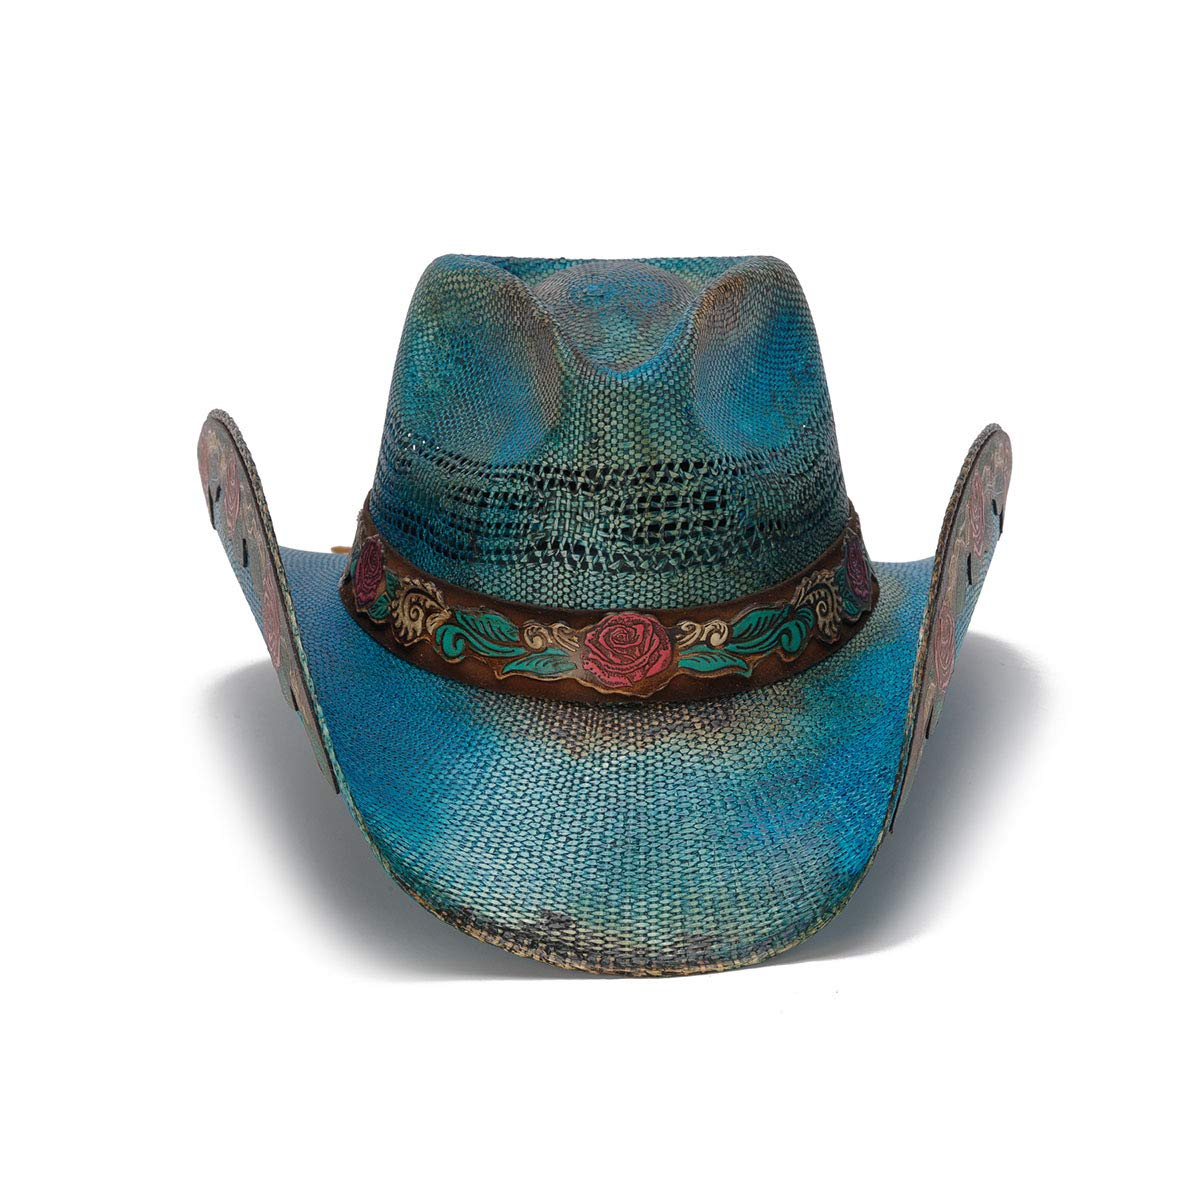 Stampede Hats Women's Love Story Rose Straw Western Hat M Blue by Stampede Hats (Image #2)